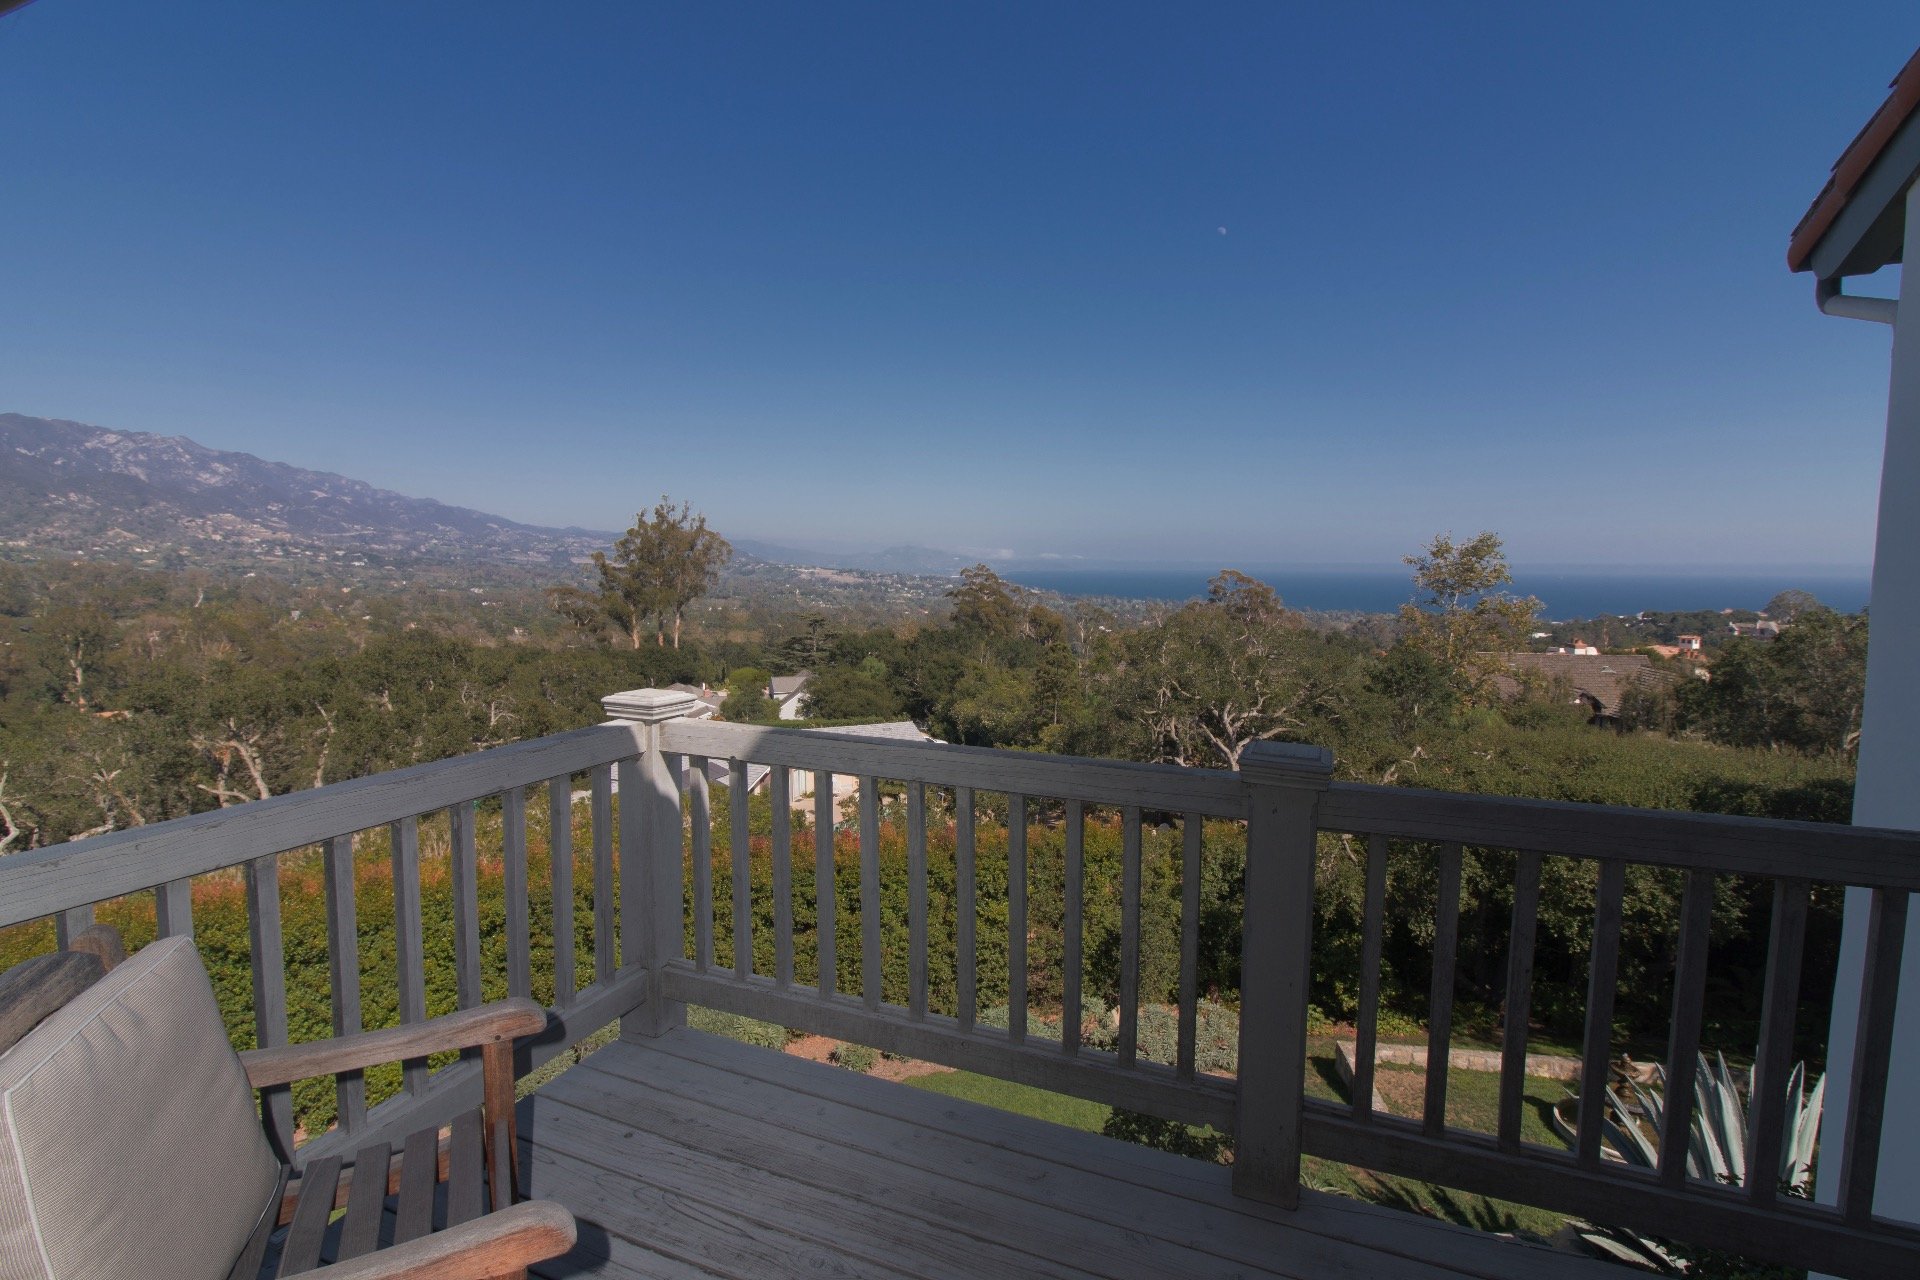 Mountain and ocean views from the balcony